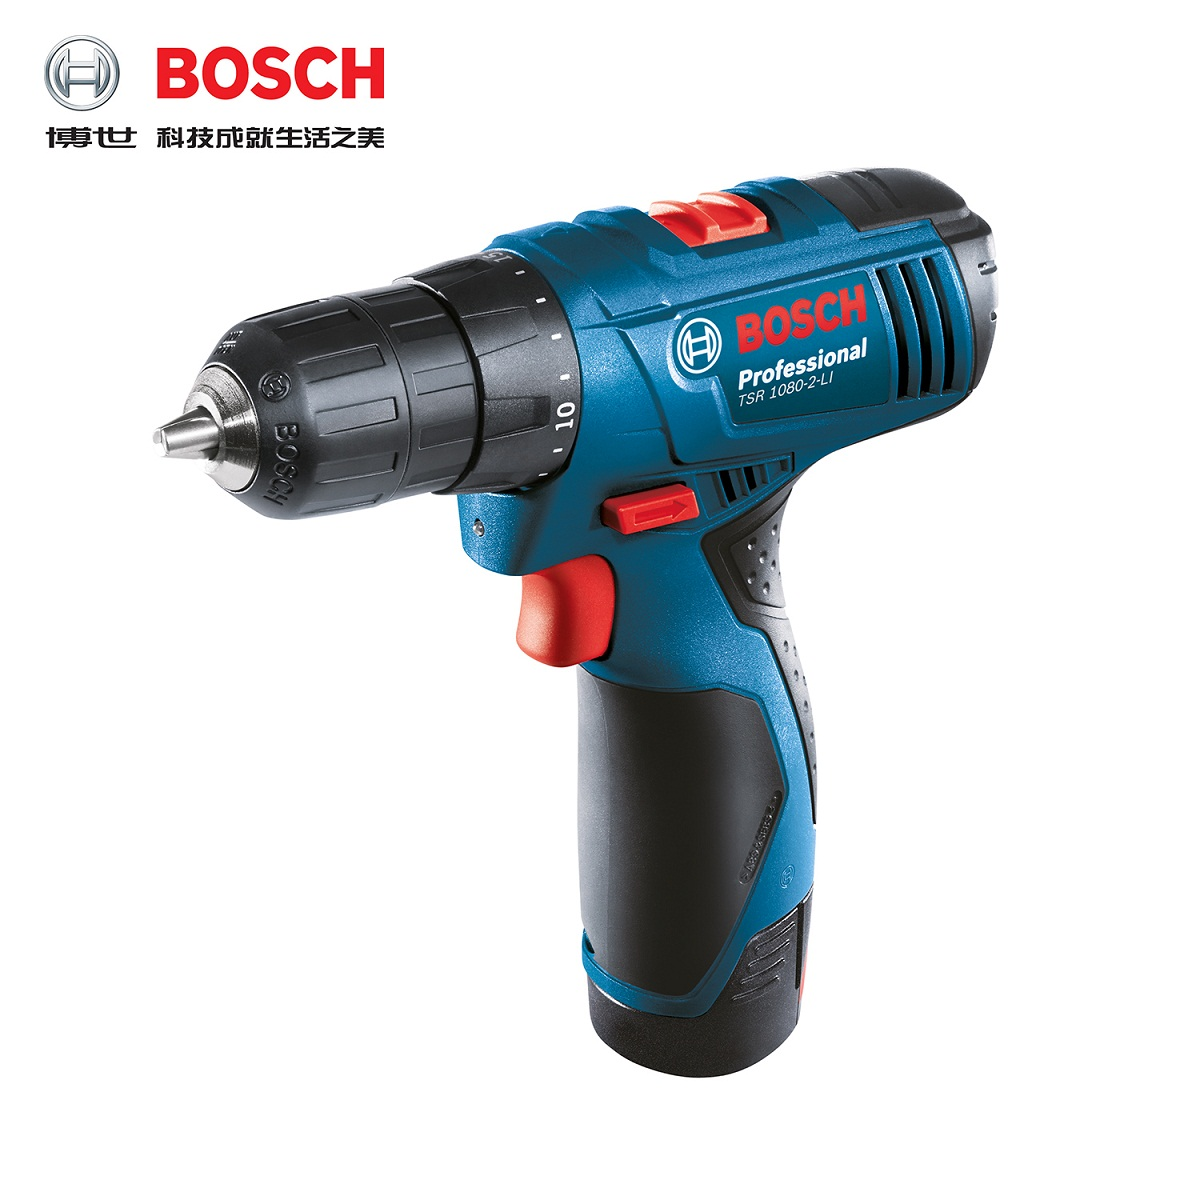 National free shipping bosch tsr1080-2-li rechargeable drill